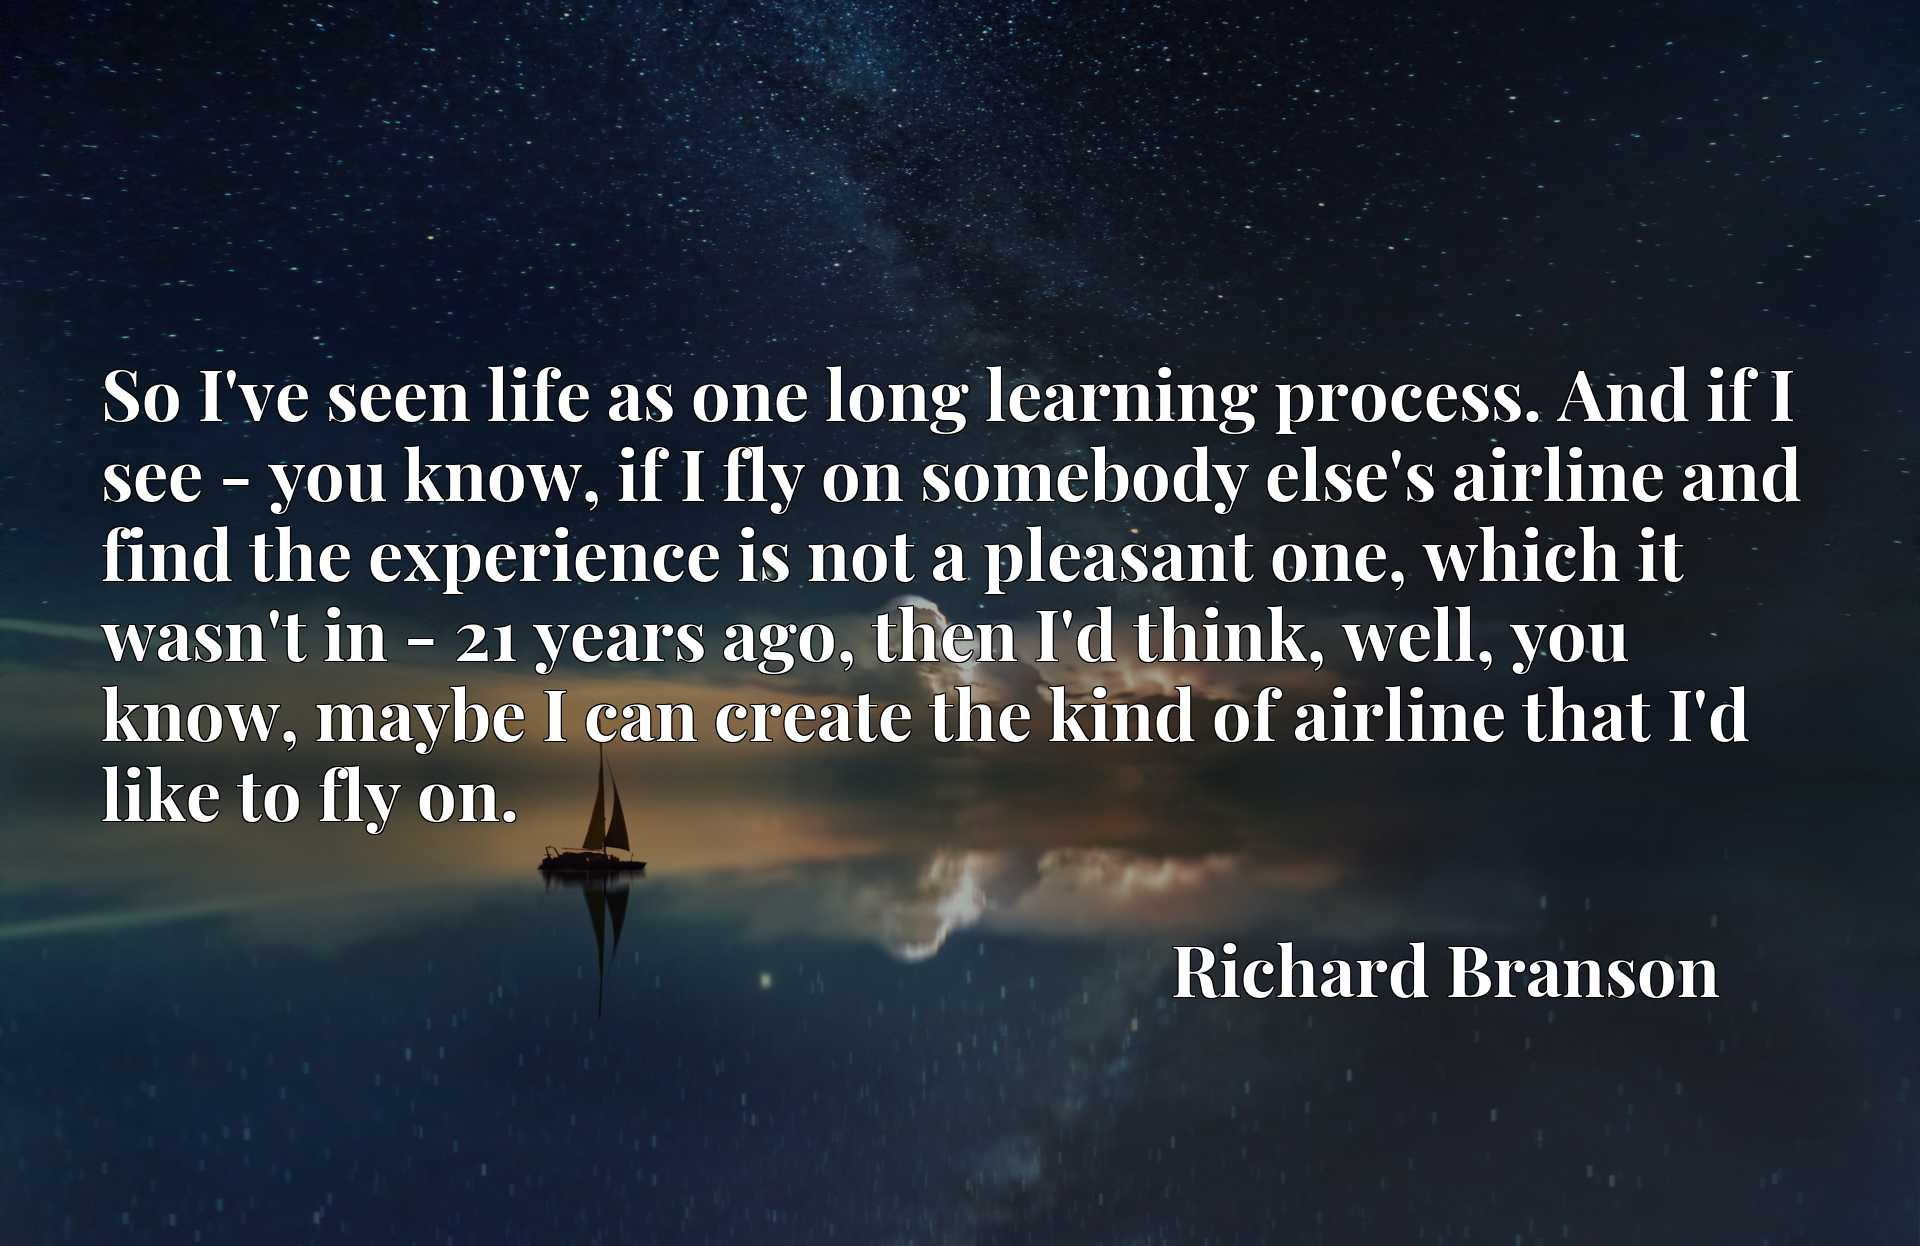 So I've seen life as one long learning process. And if I see - you know, if I fly on somebody else's airline and find the experience is not a pleasant one, which it wasn't in - 21 years ago, then I'd think, well, you know, maybe I can create the kind of airline that I'd like to fly on.